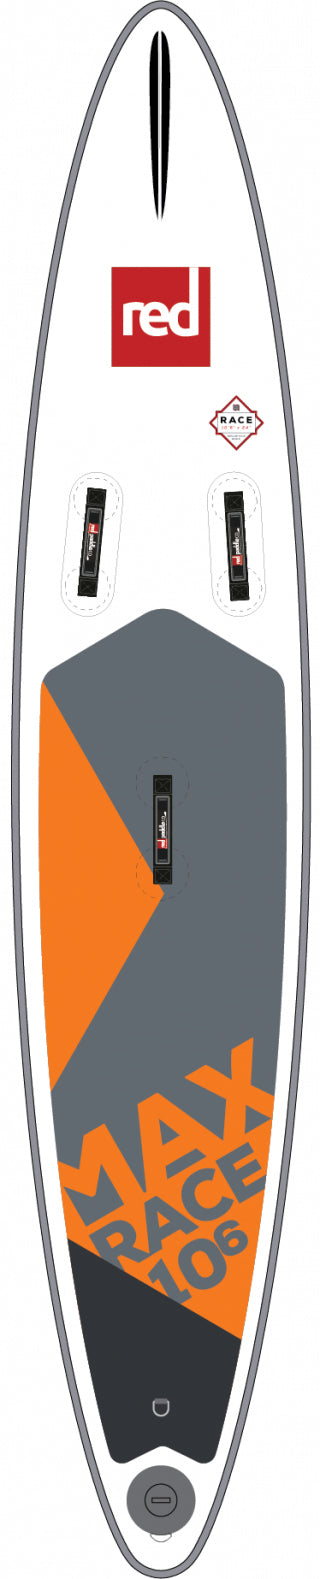 "Red Paddle Co. 10'6"" MAX RACE MSL inflatable SUP"